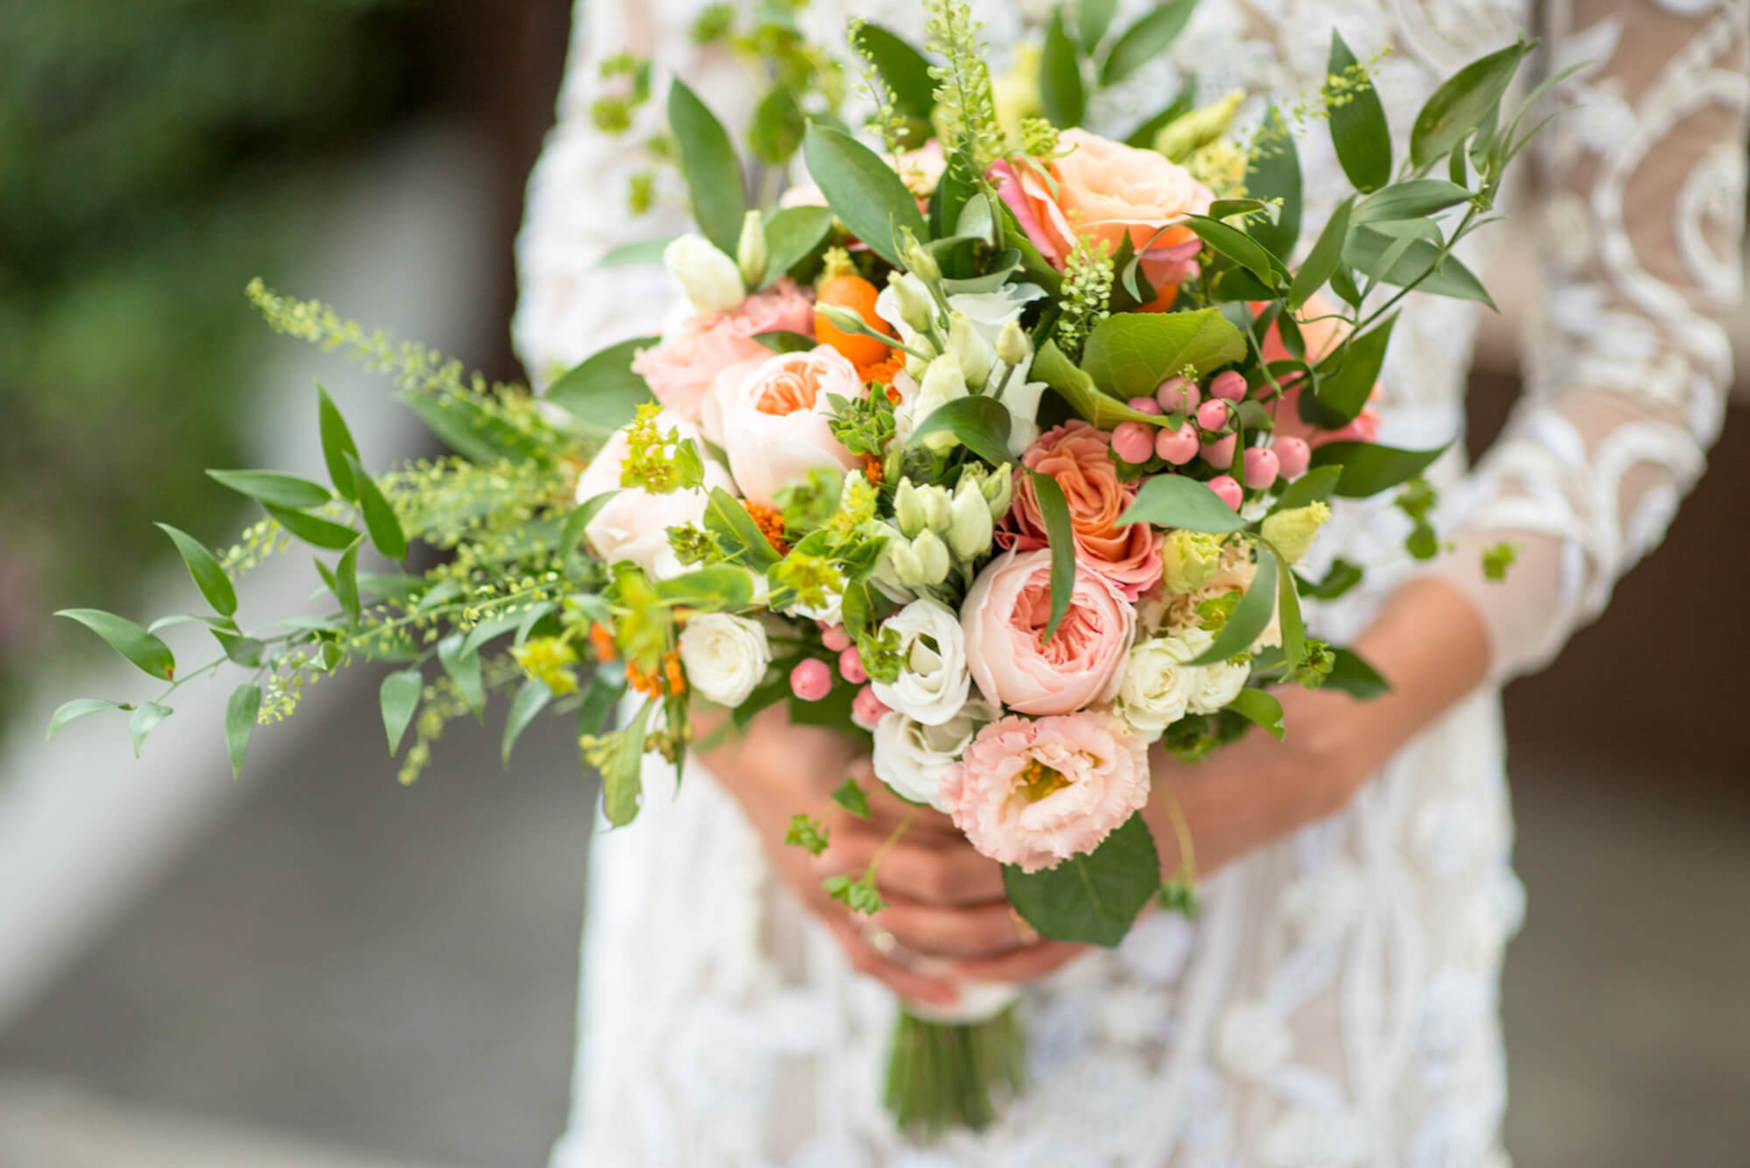 wedding flowers bouquet pastel colours greens